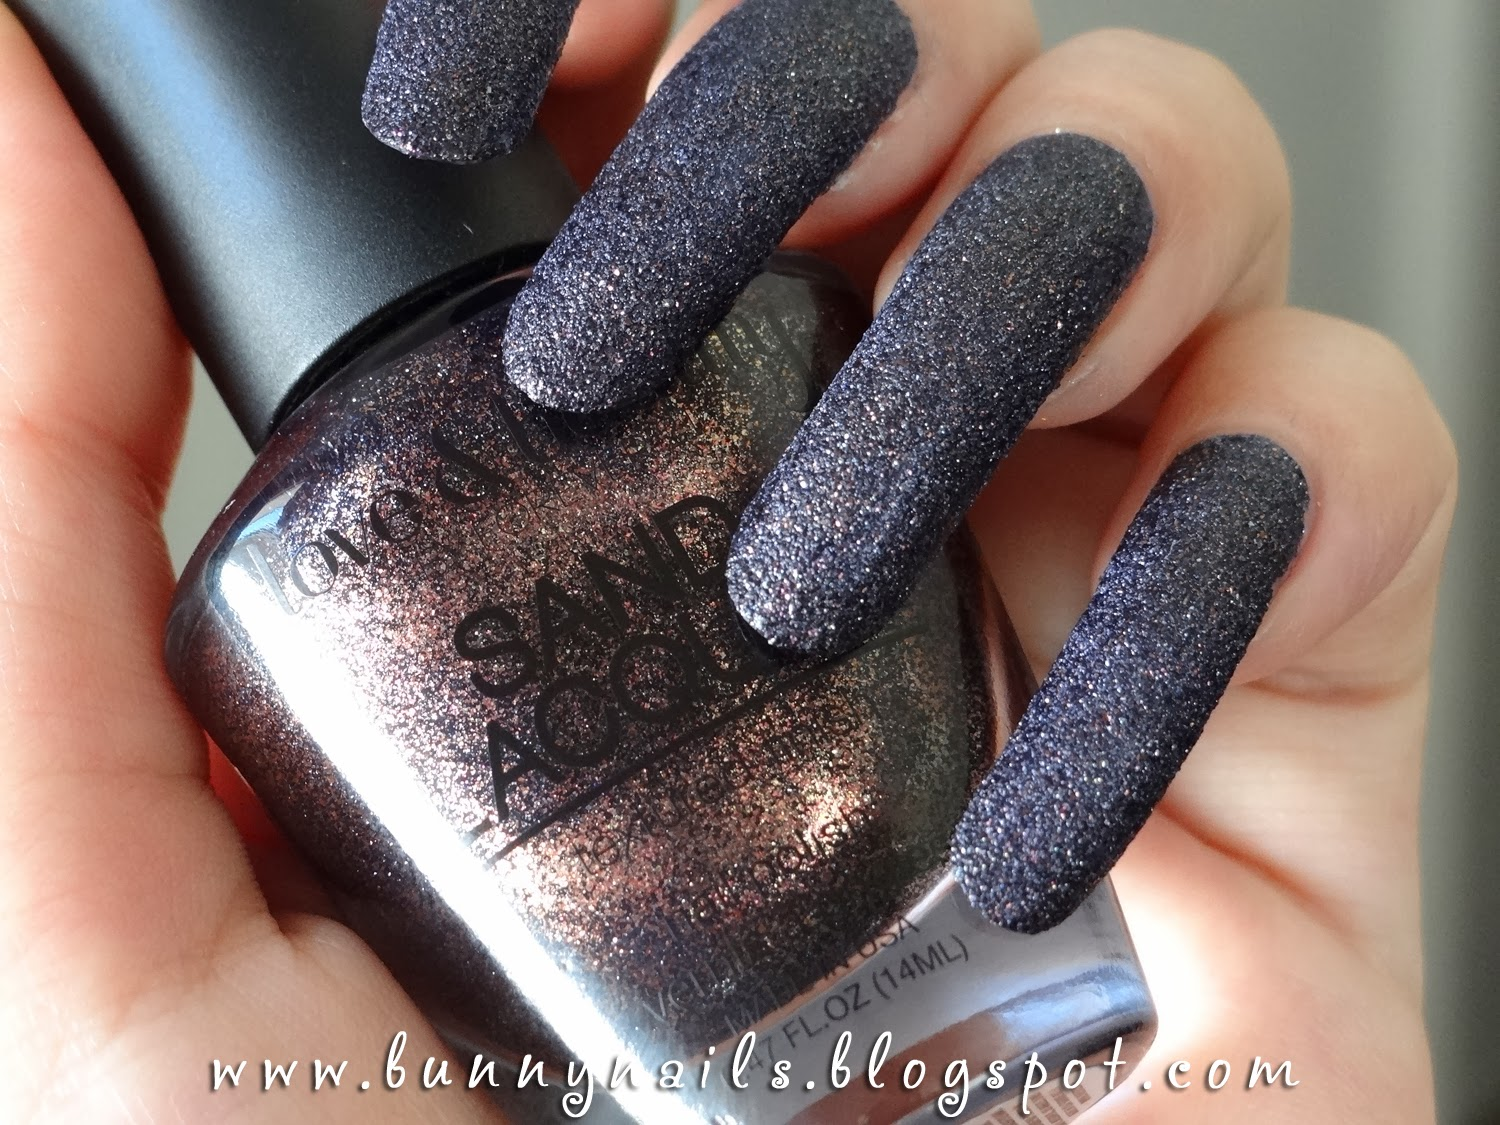 Line Texture On Nails : Bunny nails forever black glam sand lacquer textured